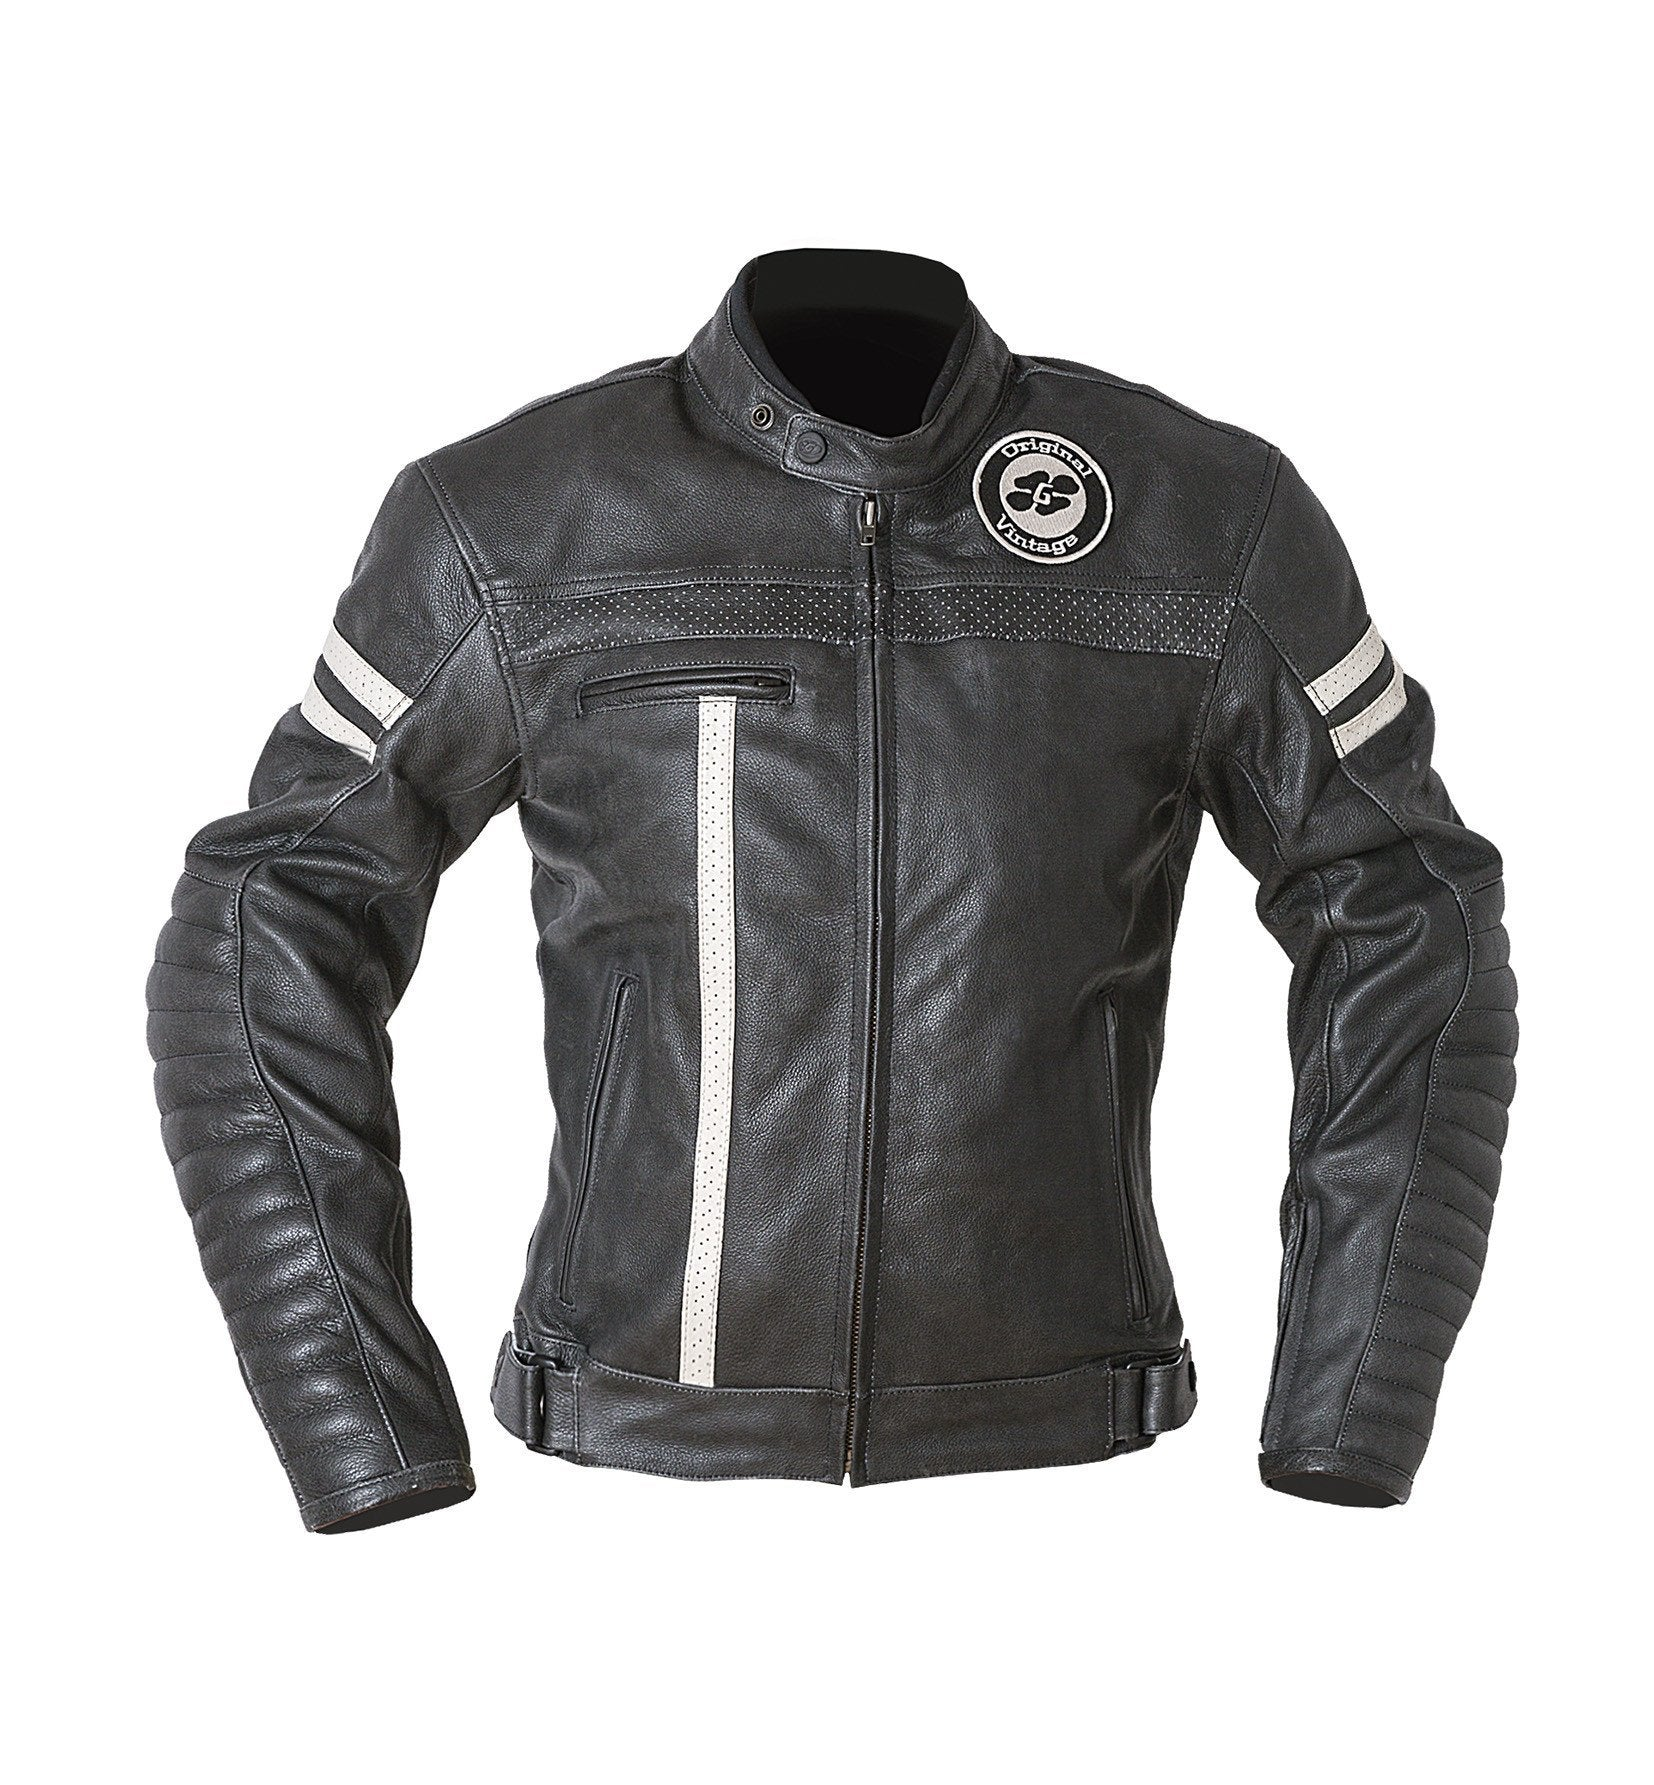 Garibaldi - Garibaldi Moka Racer Vintage Black Leather Ladies Jacket - Ladies Jackets - Salt Flats Clothing